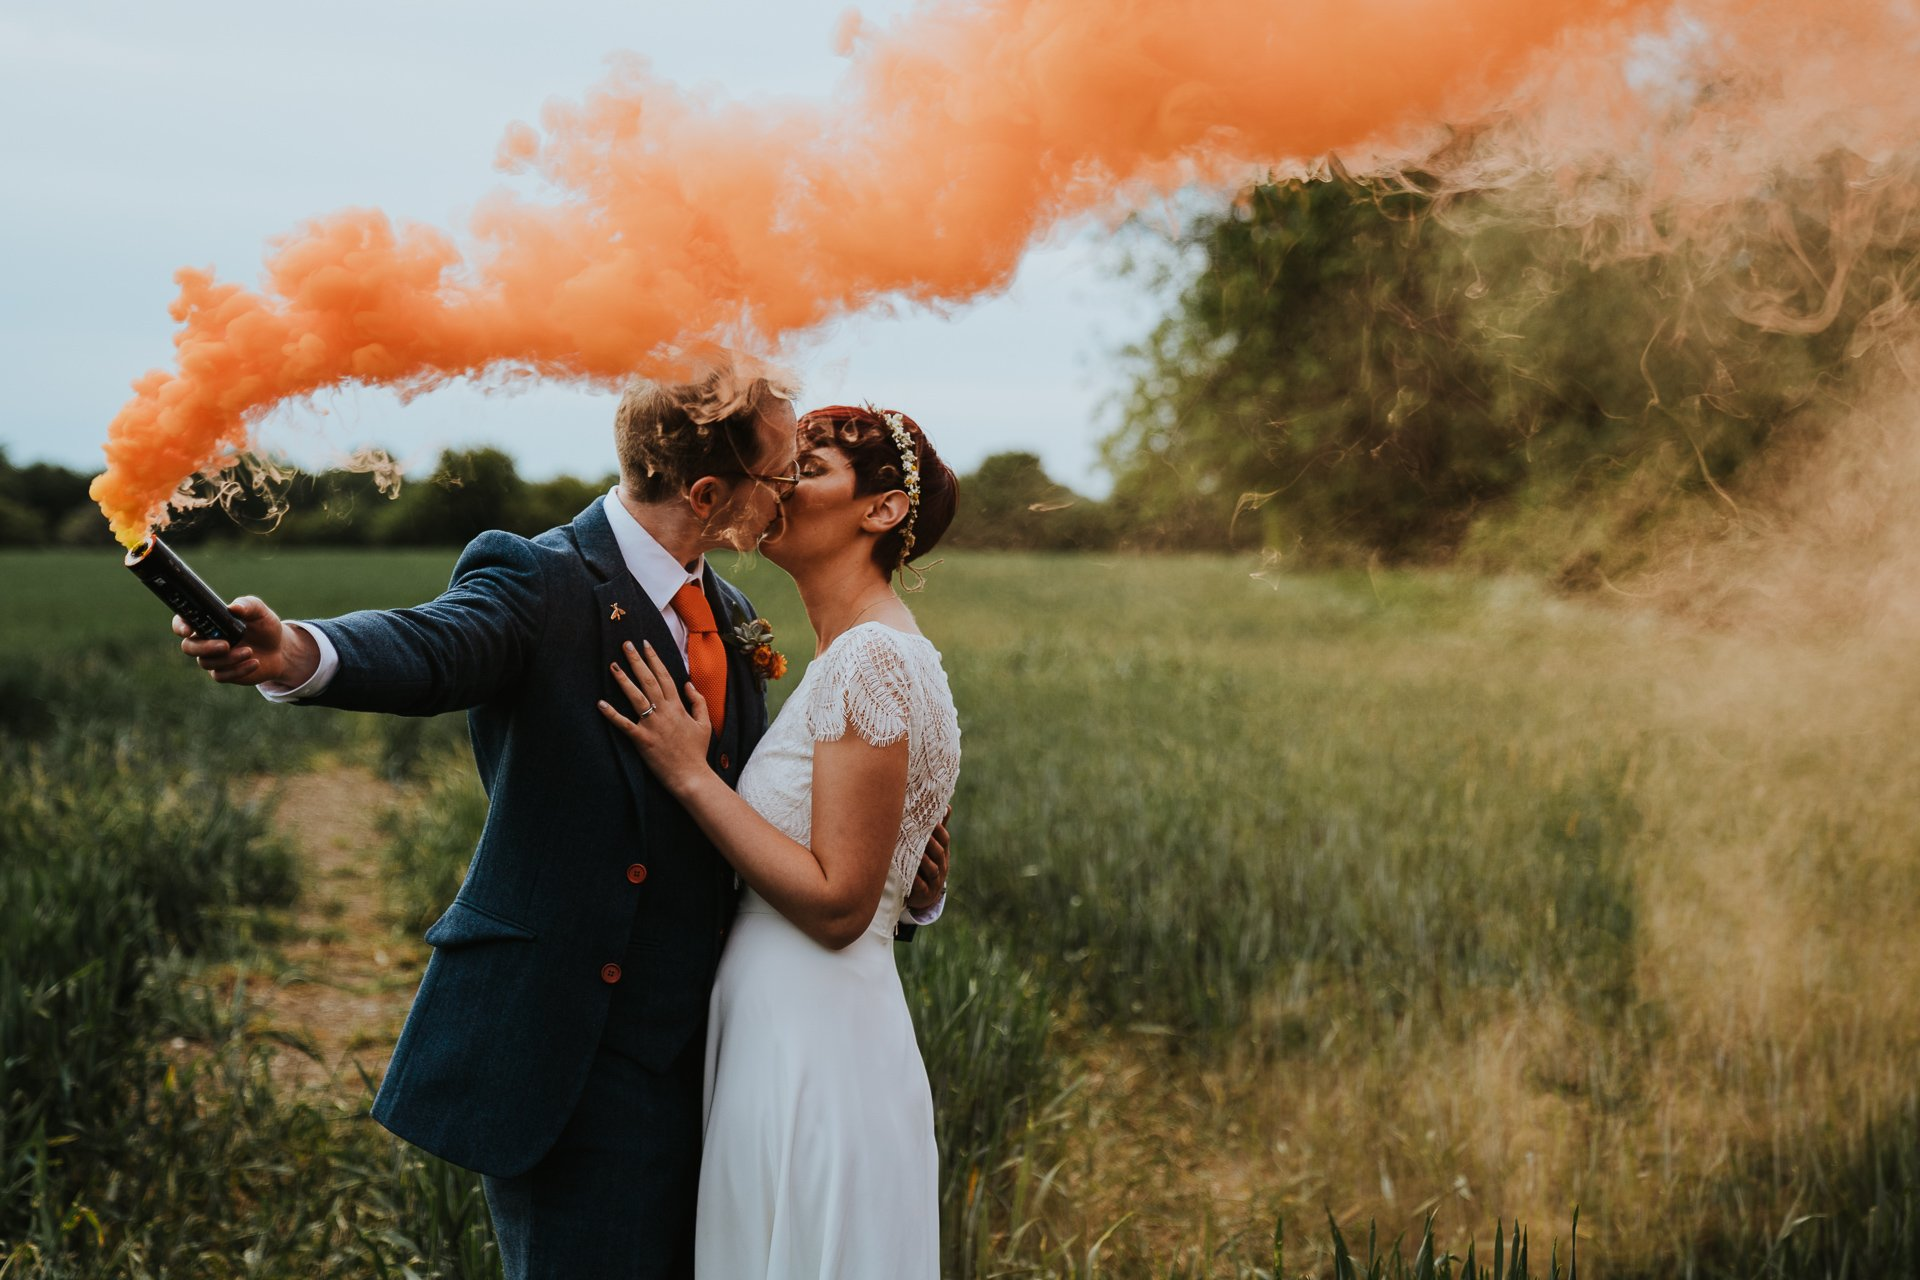 Bride and Groom cuddling under smoke bomb